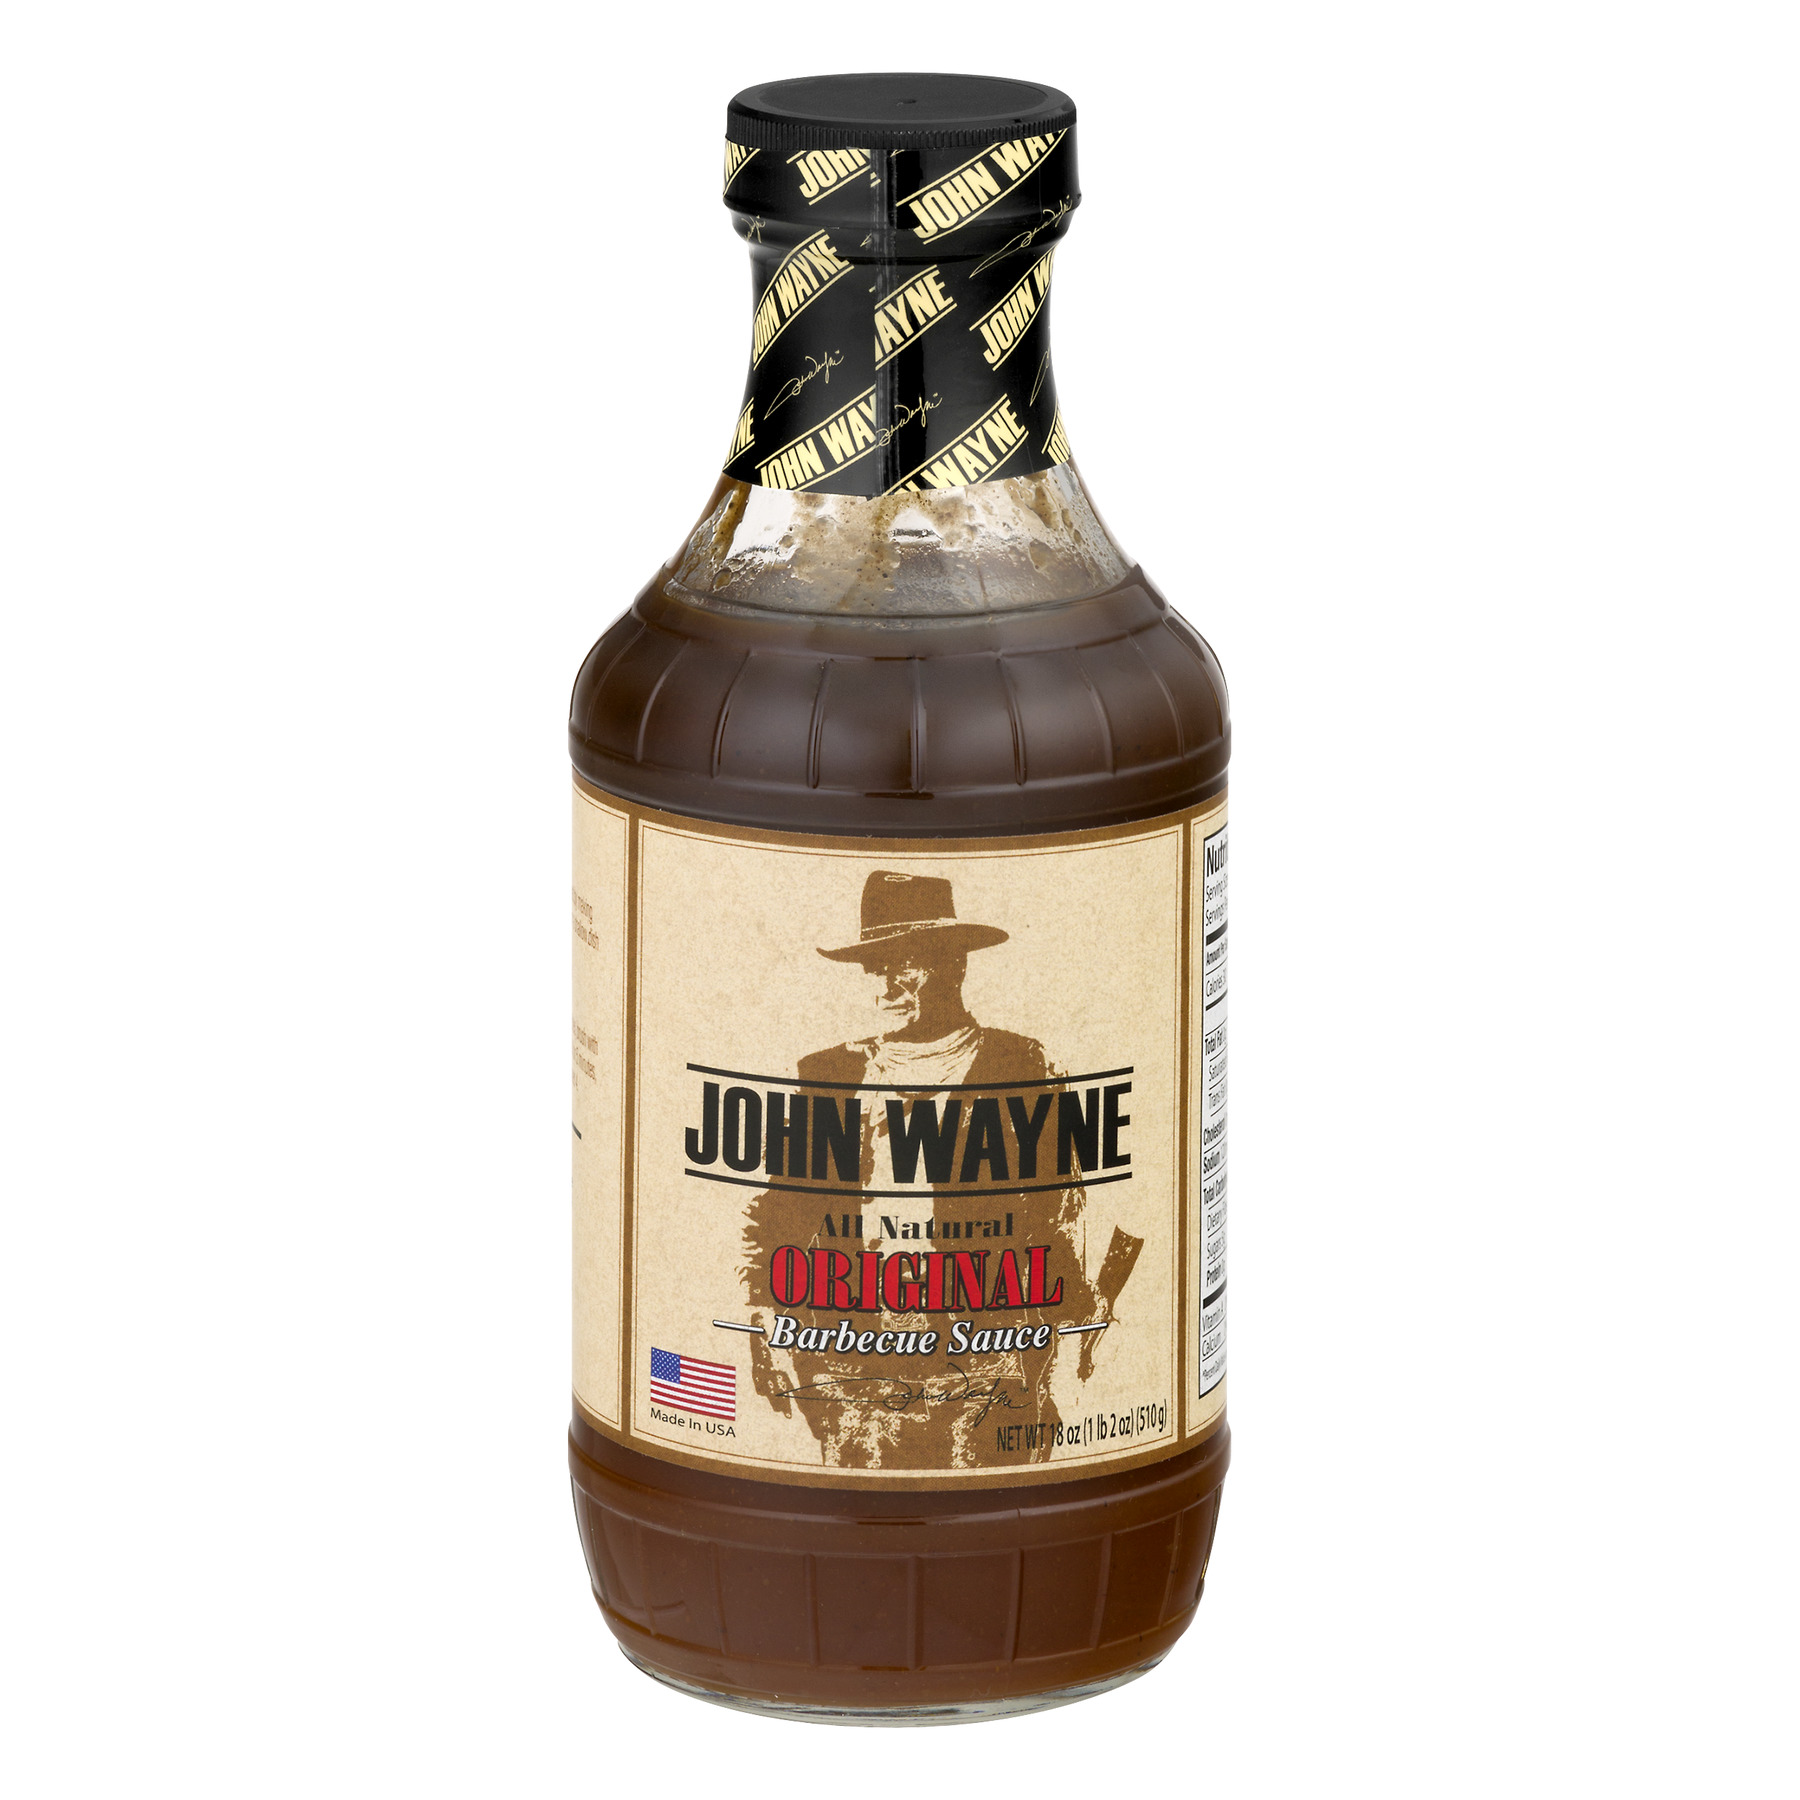 official john wayne way to barbecue the